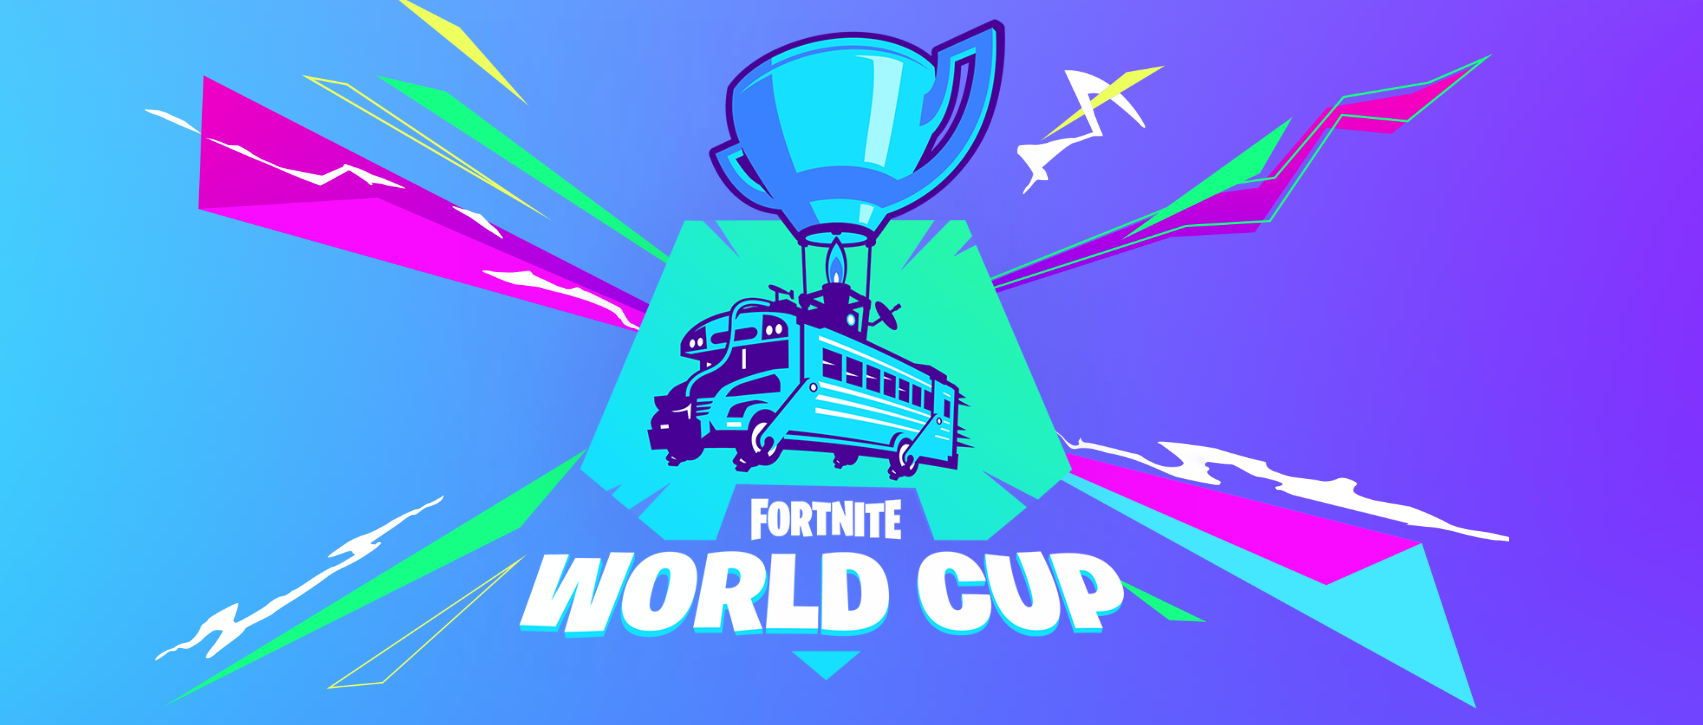 Fortnite Arena Do Divisions Average Out Fortnite How To Advance Through The Arena Divisions And Take Part In The World Cup Online Opens Vg247